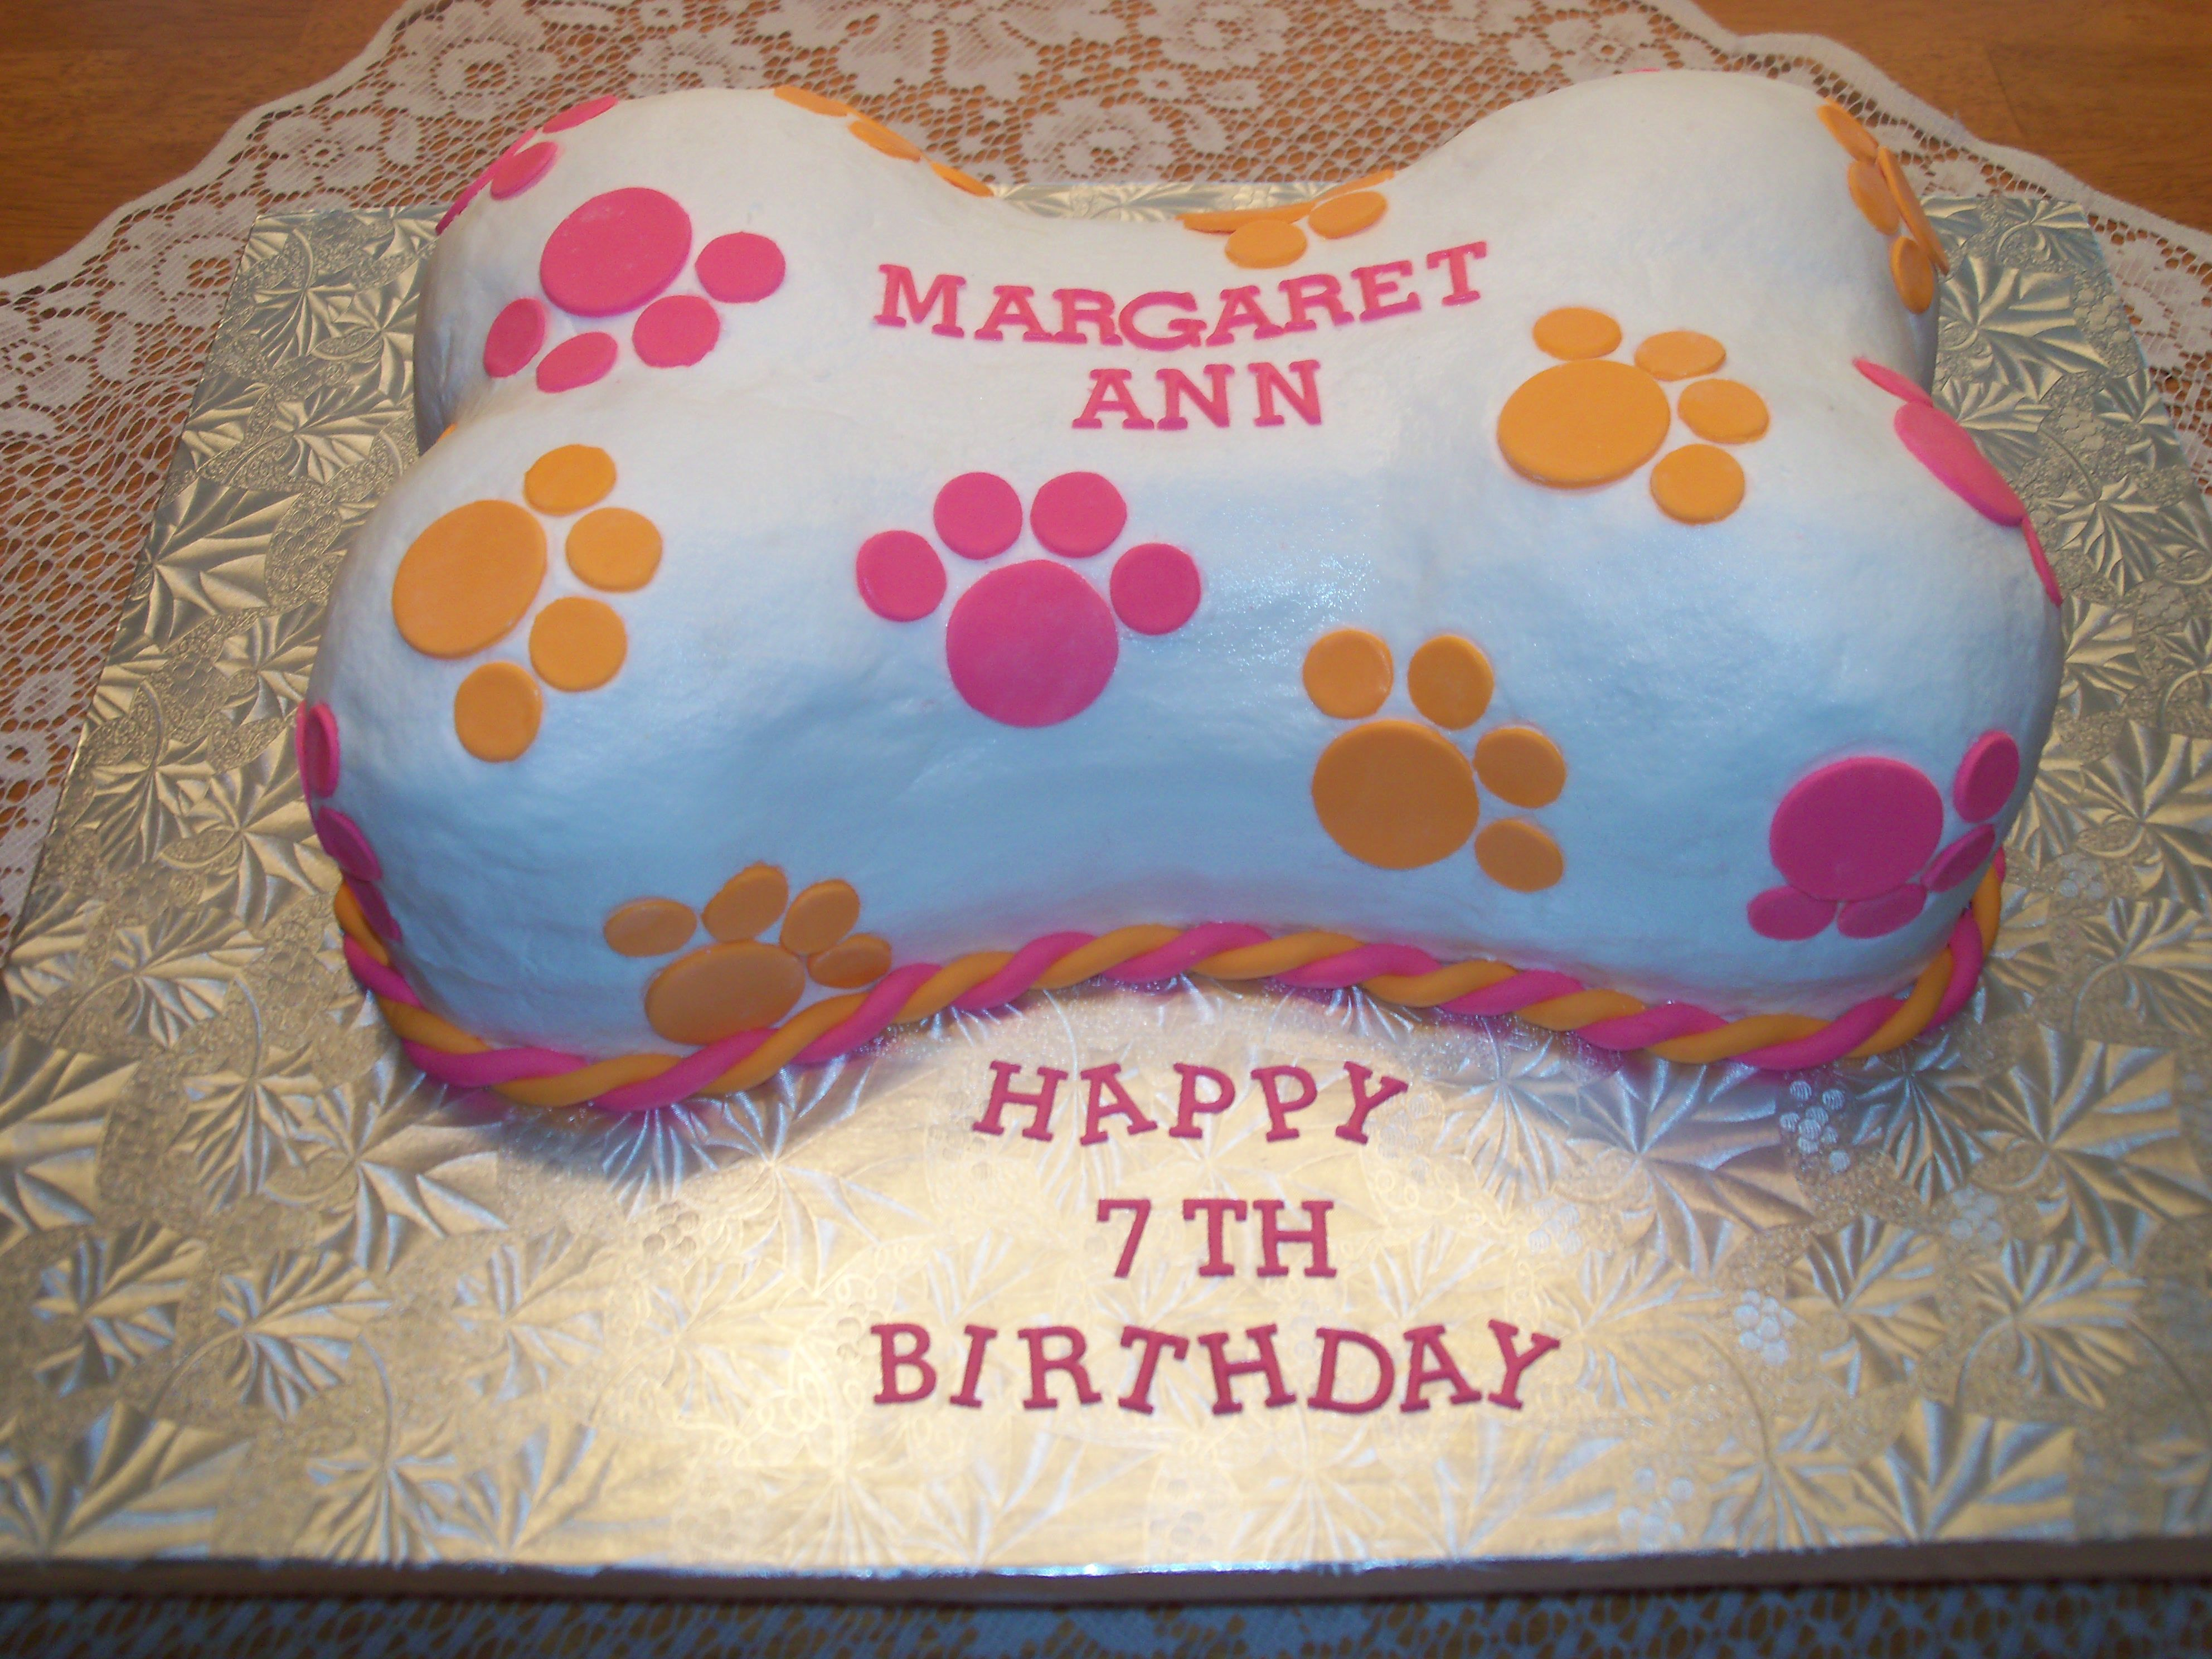 Margaret Ann Thought Her Dog Bone Cake Was Adorable With